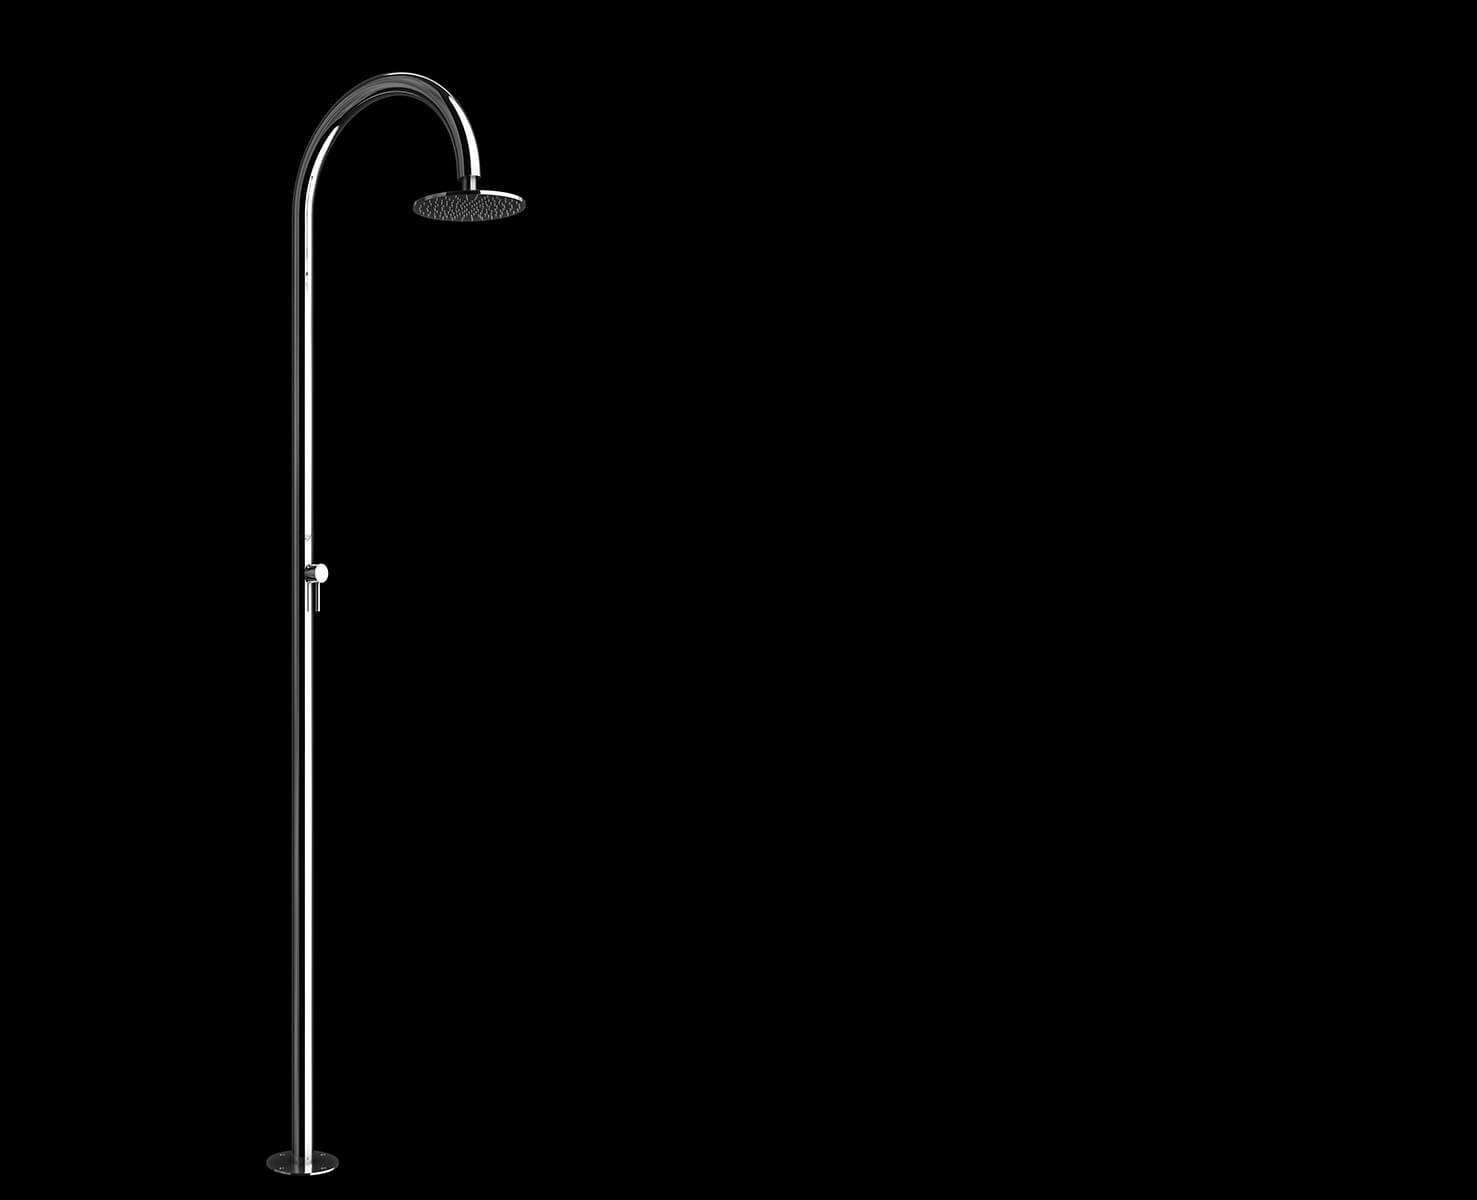 Picture Outdoor shower, pool, garden - Sole 48 Inoxstyle